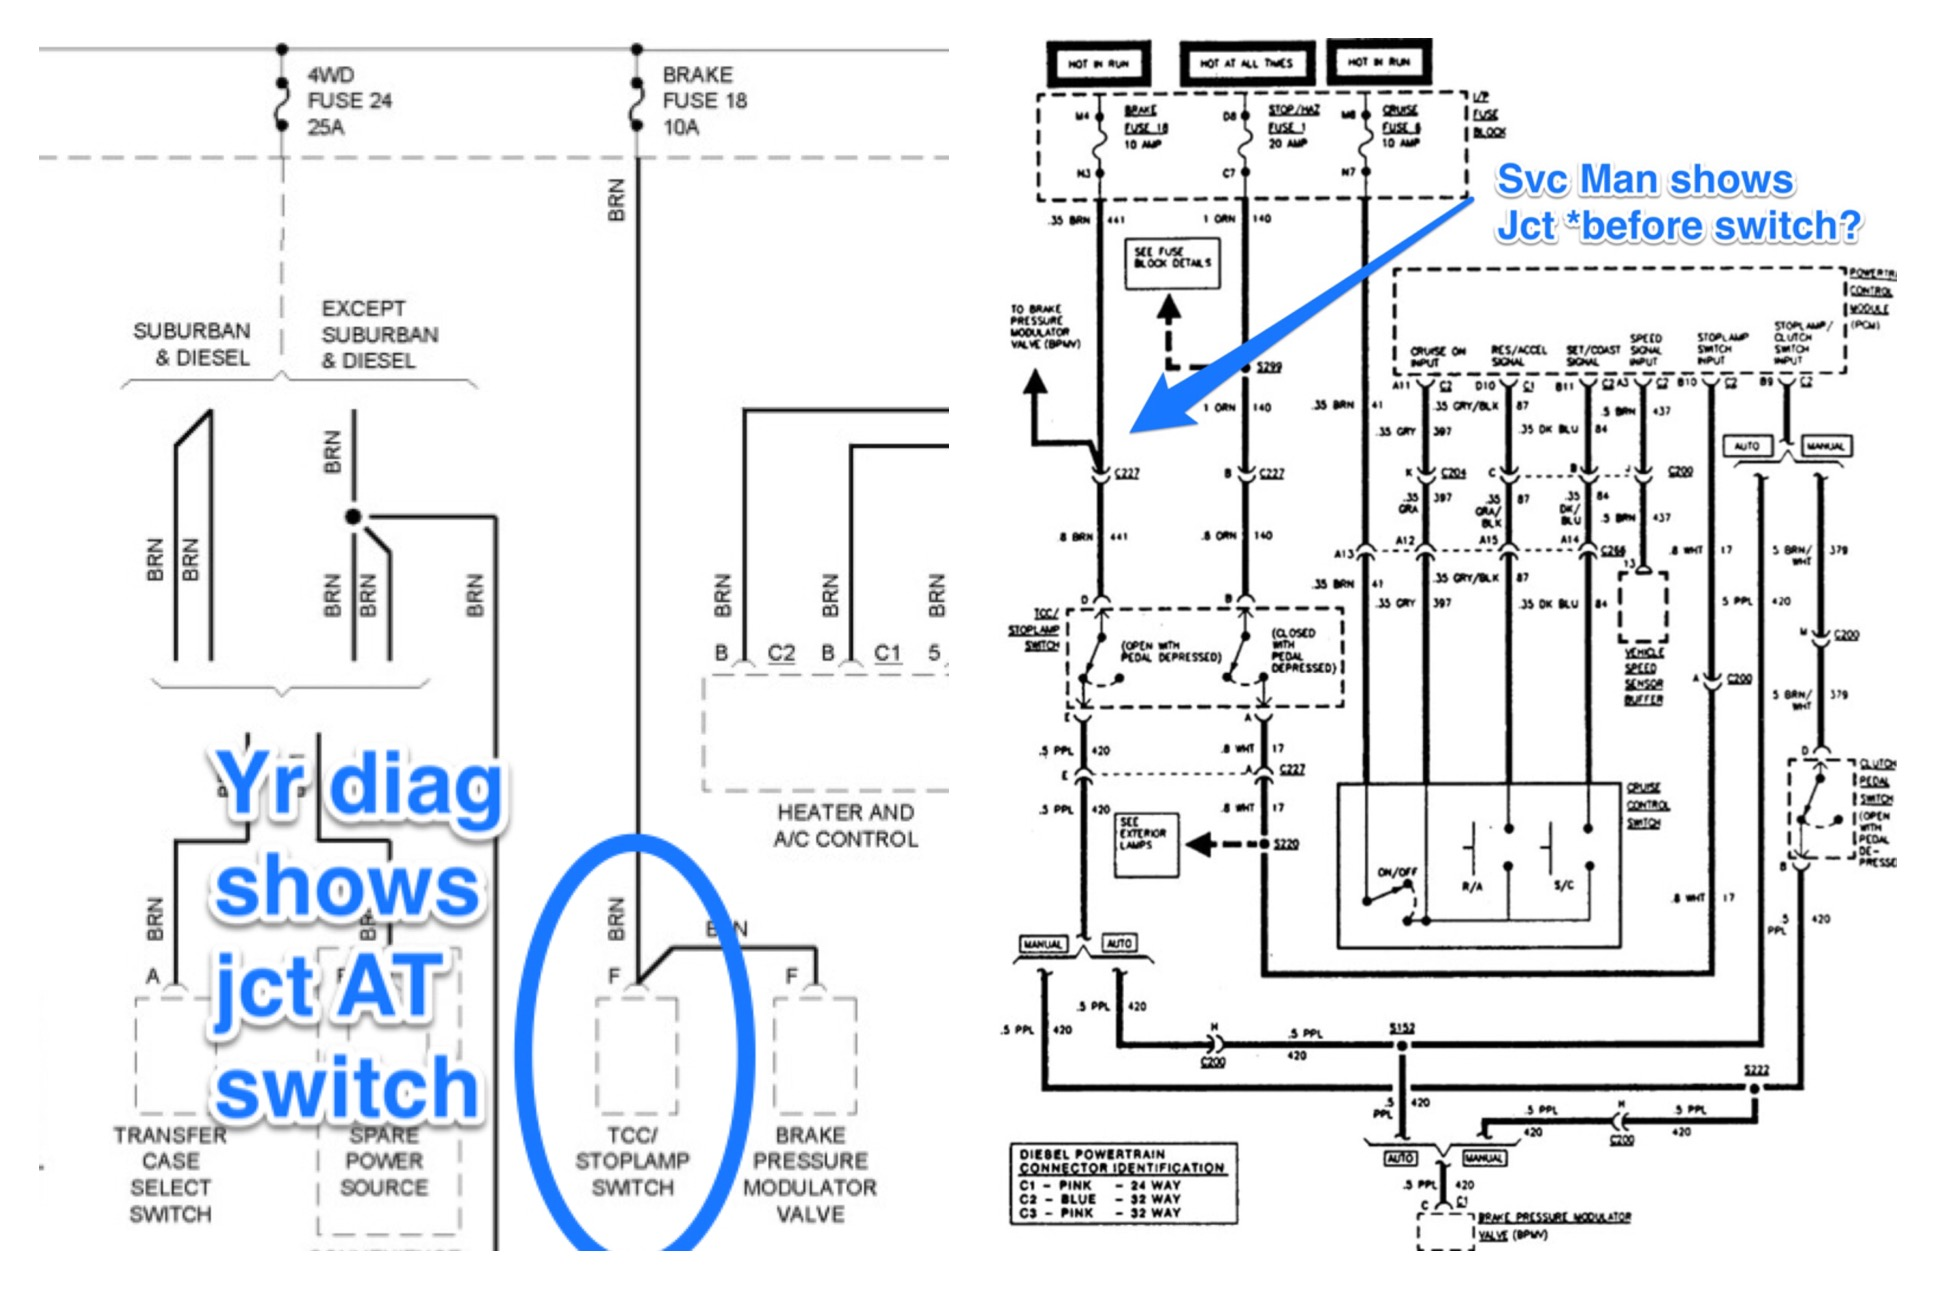 DIAGRAM] Atlas Copco 1600 Wiring Diagram FULL Version HD Quality Wiring  Diagram - GAMEDIAGRAM.LINEAKEBAP.ITgamediagram.lineakebap.it